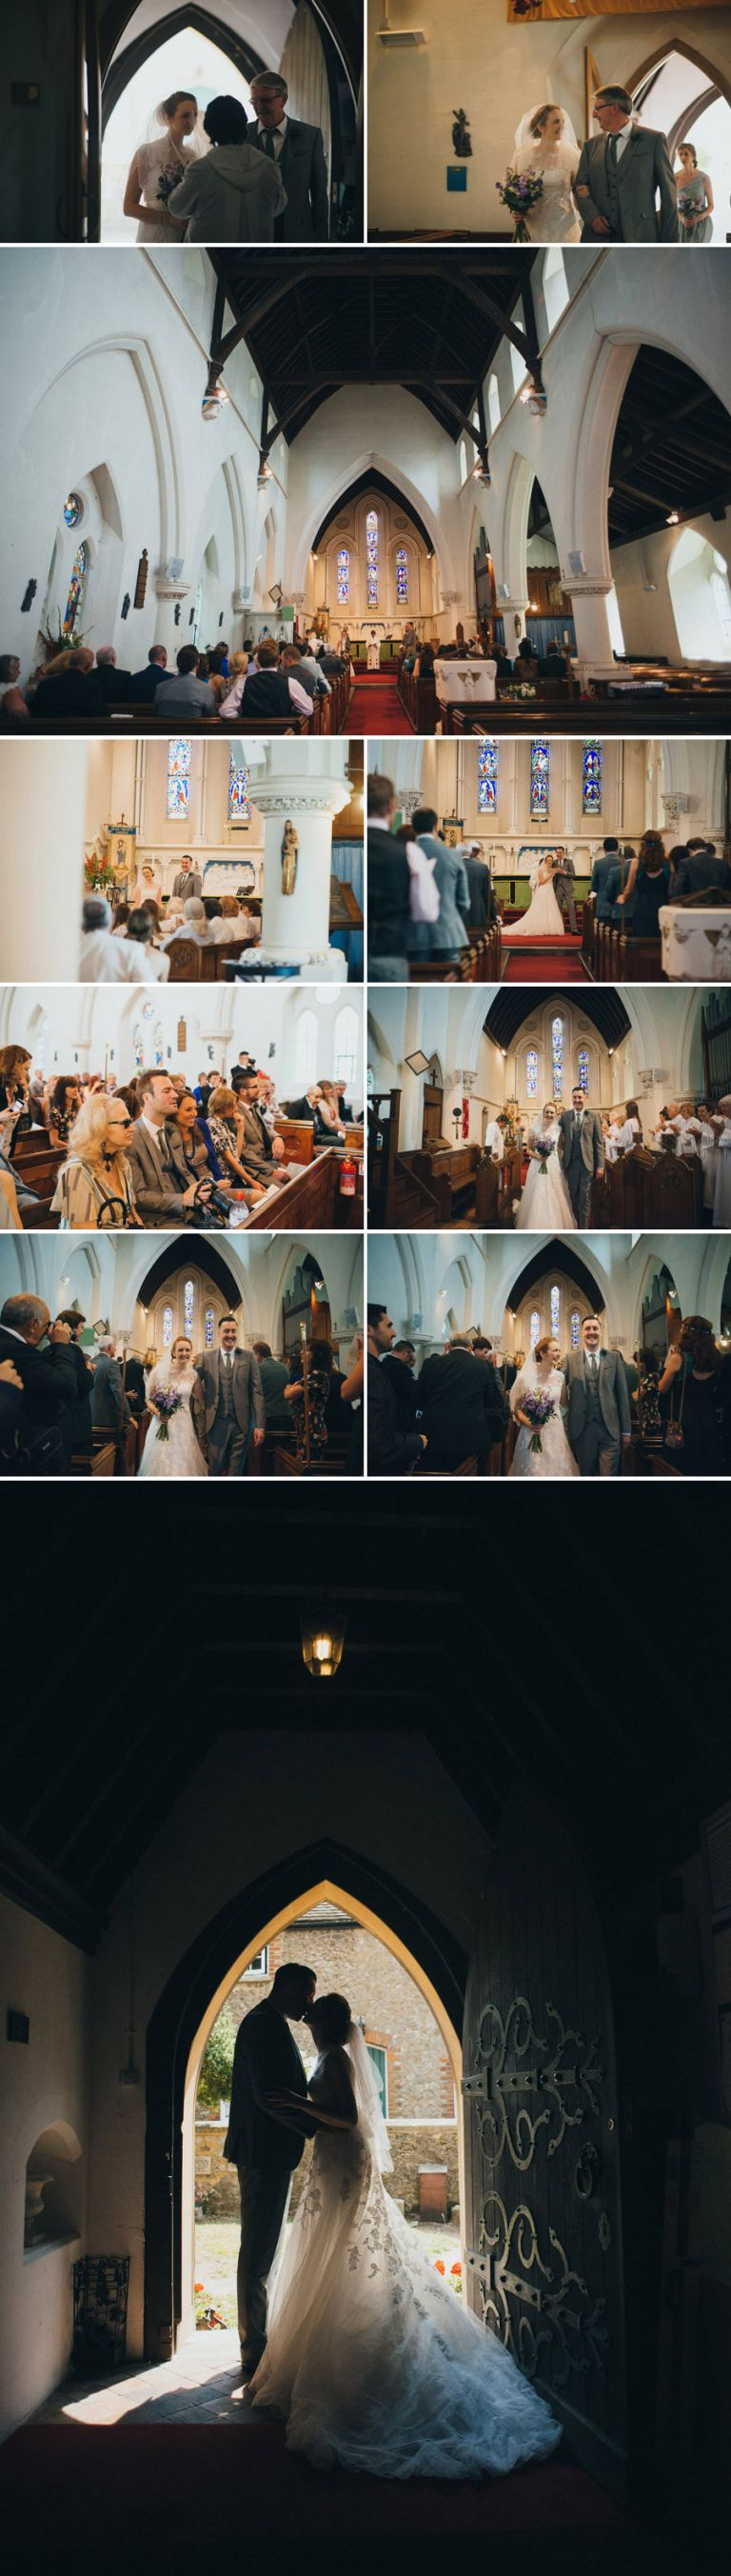 A wedding at holy trinity church larkfield, followed by a reception at the moat in wrotham